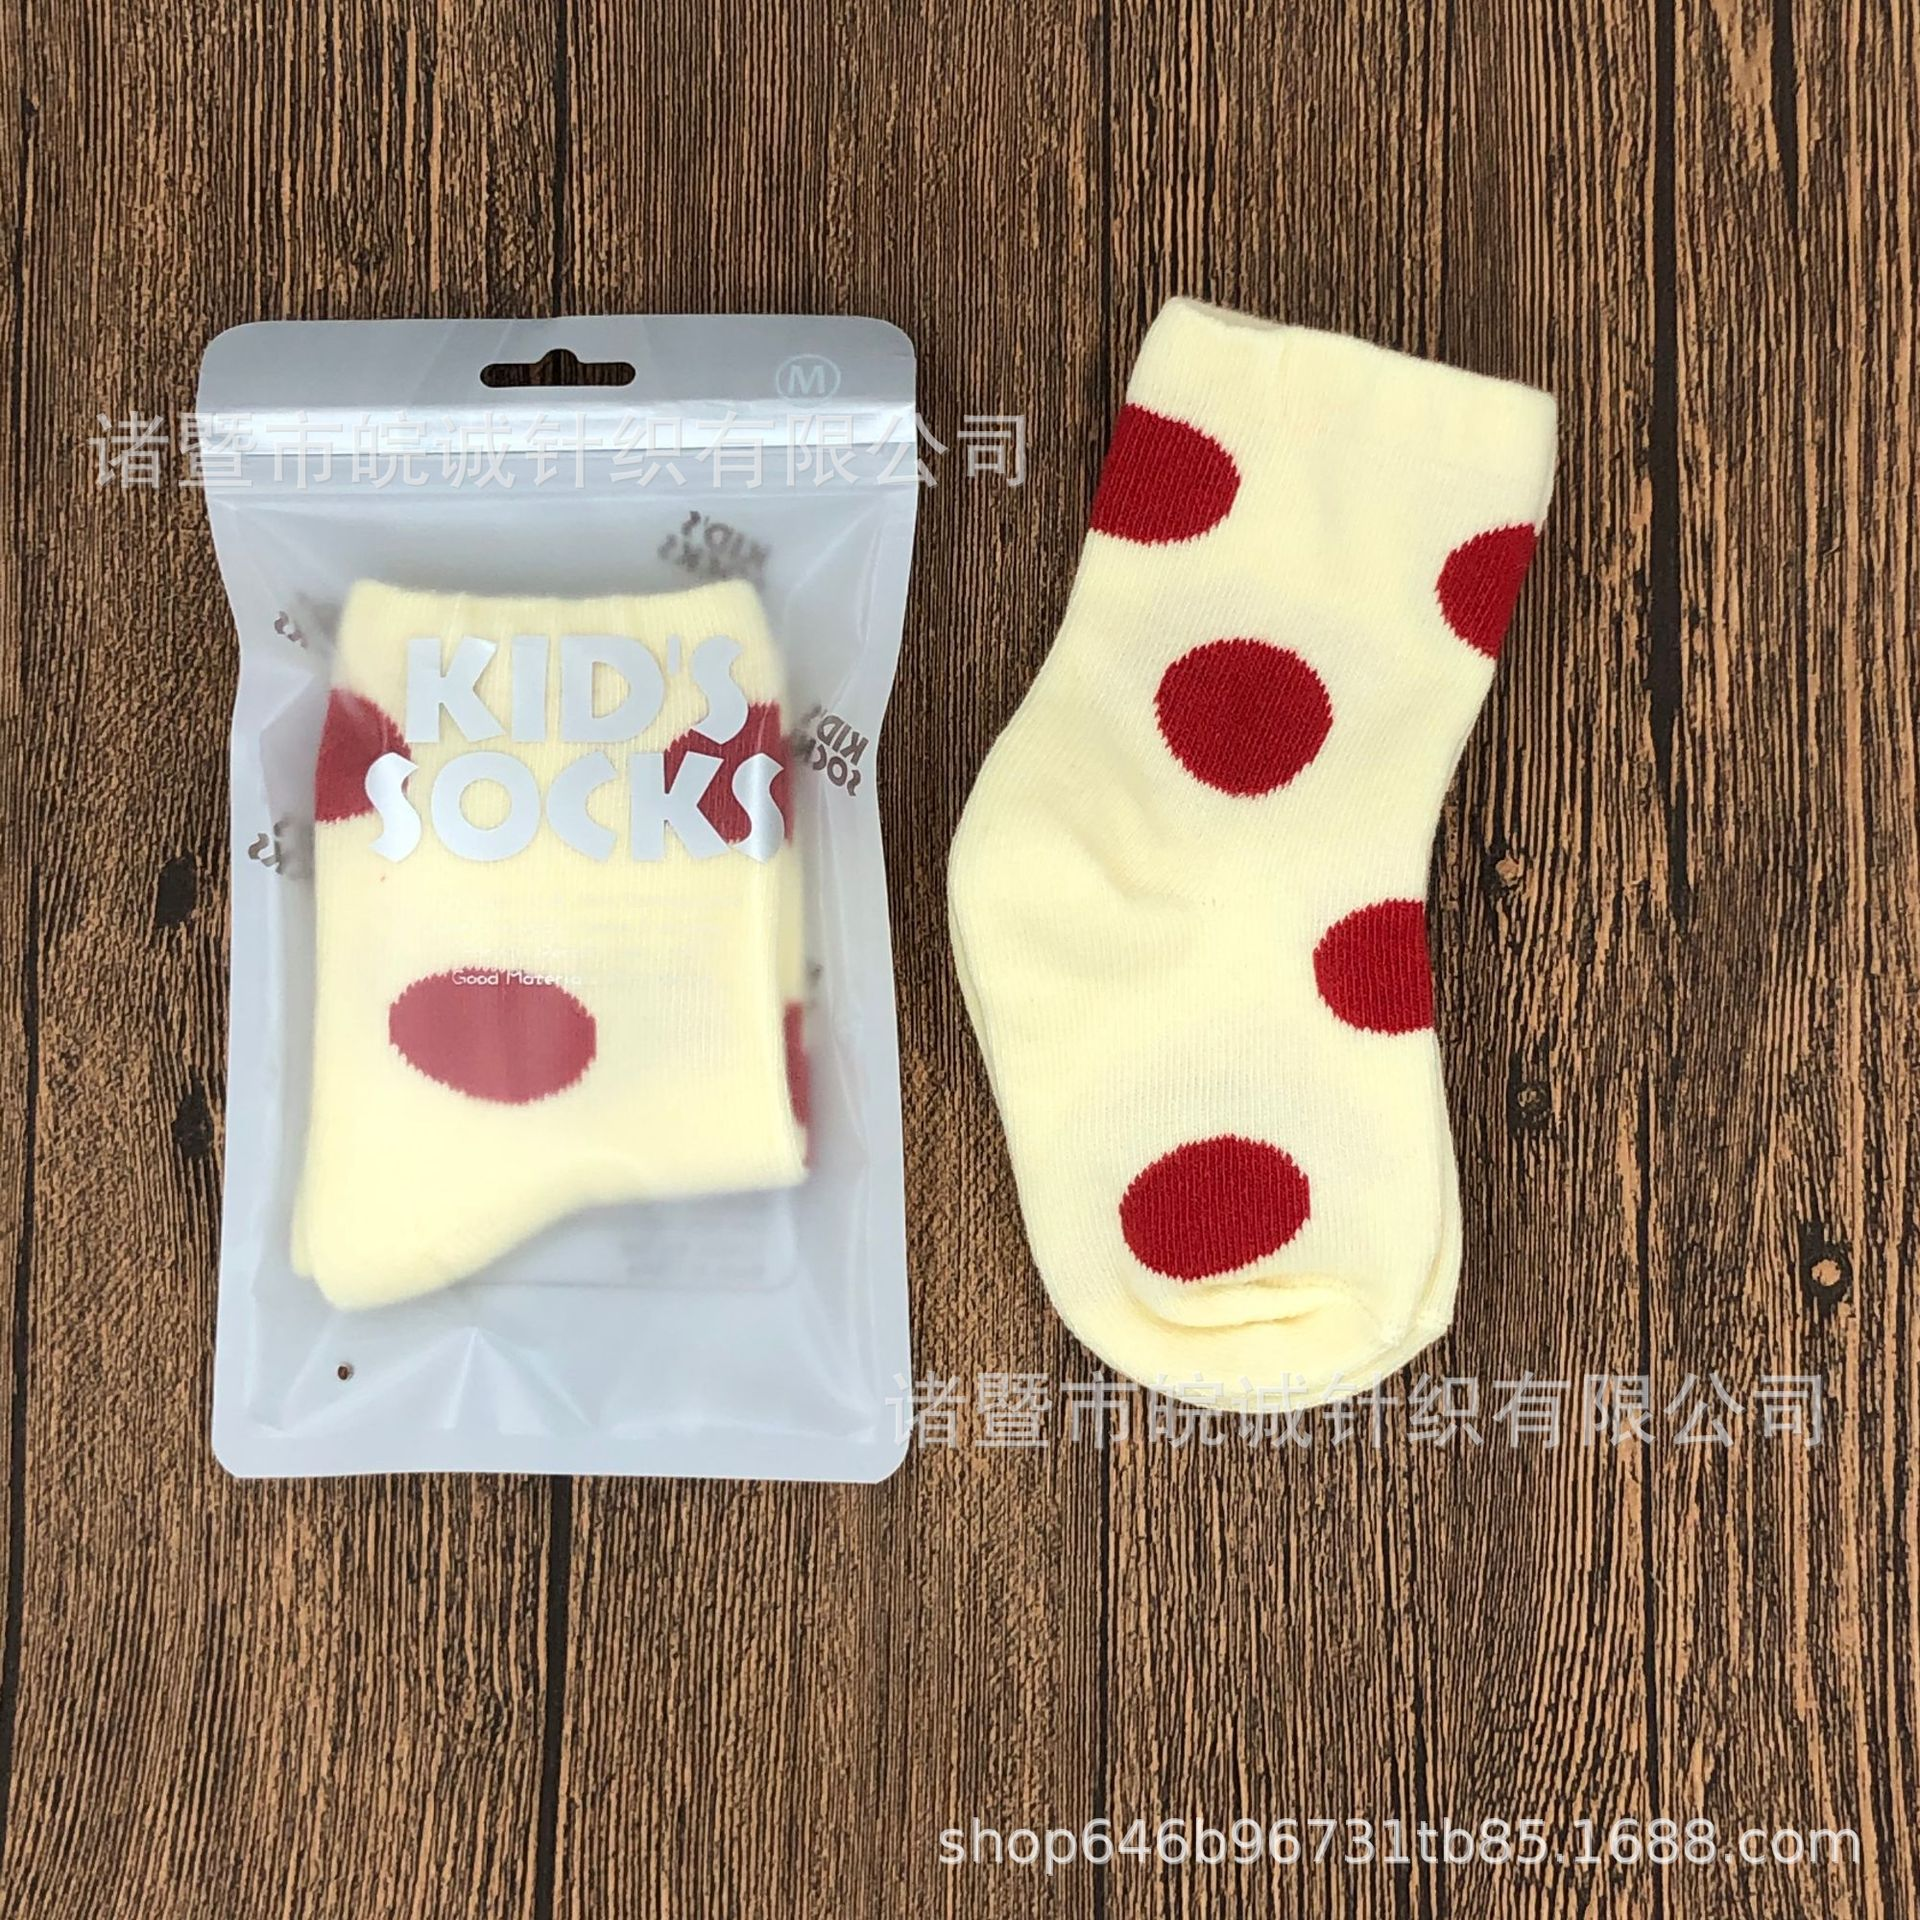 Soft Big Polka Dots Detailed Socks for Comfortable and Fresh Feet All-Day